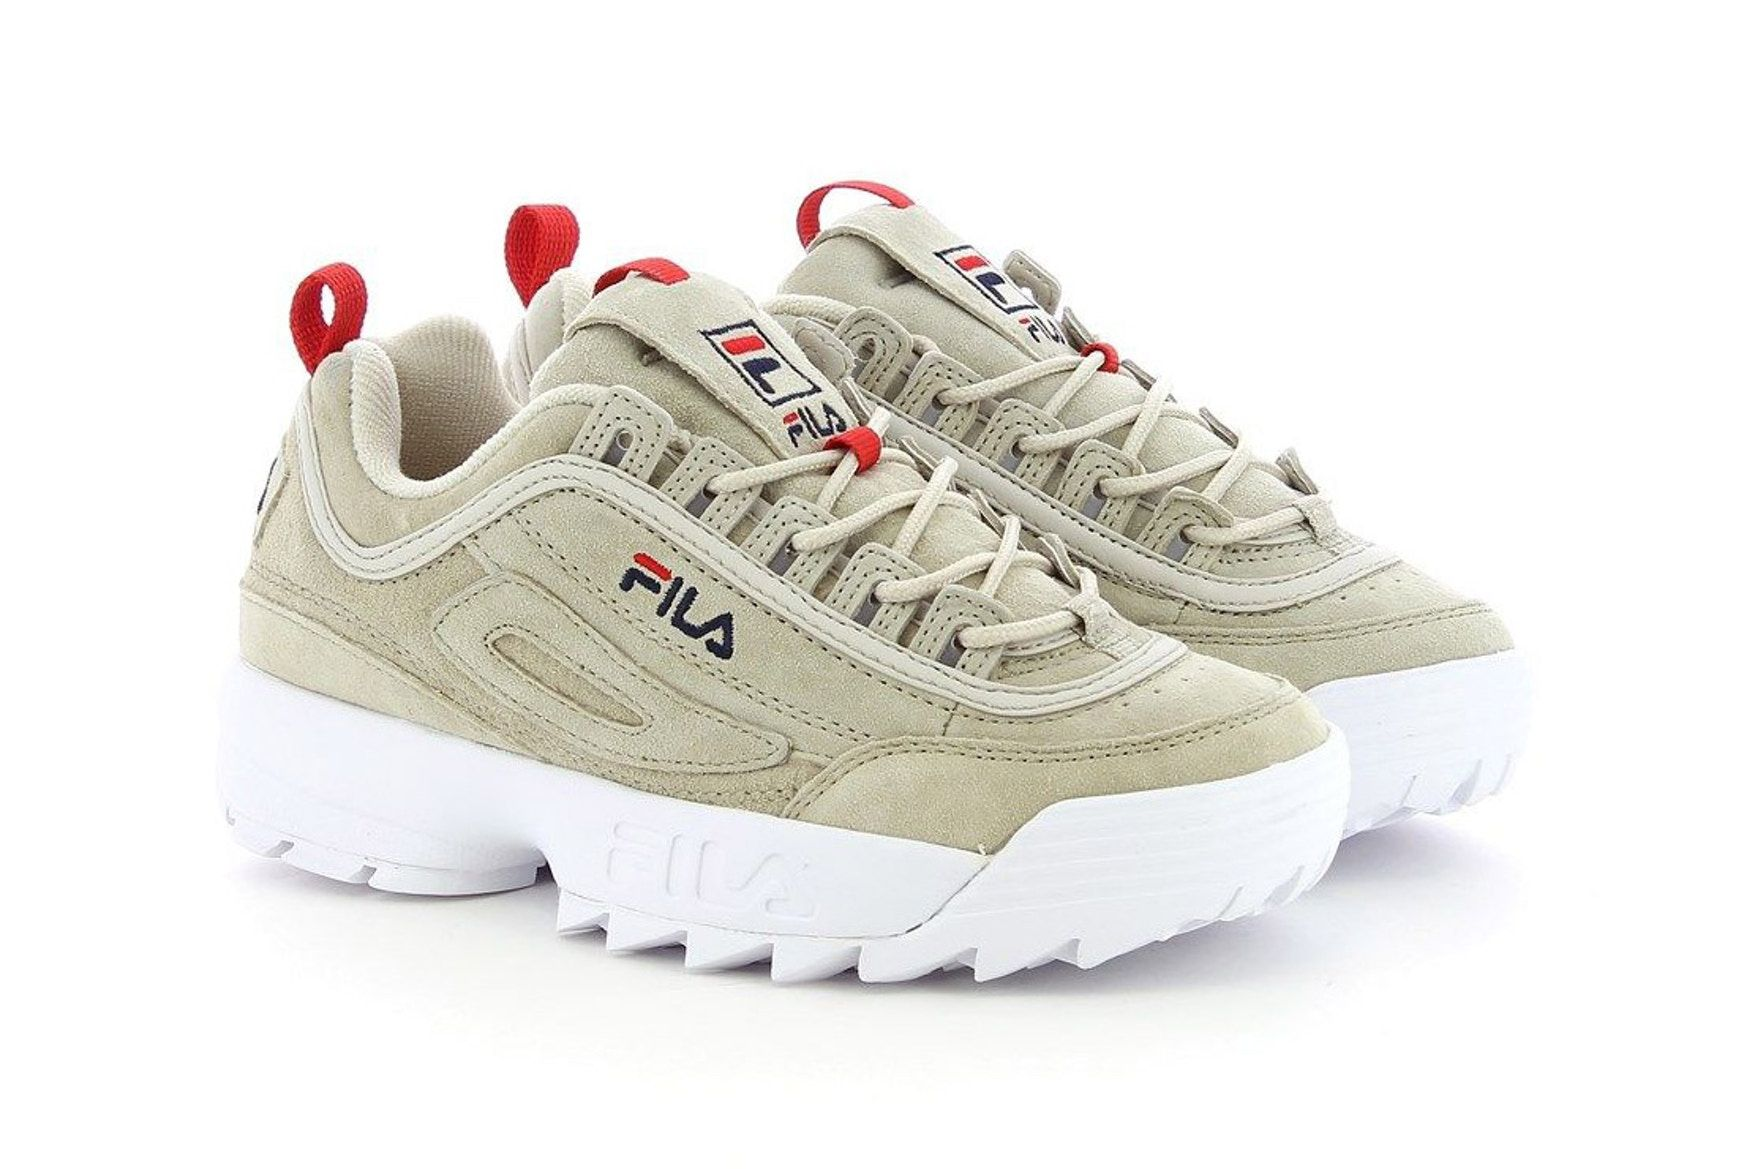 FILA's Latest Chunky Disruptor Sneaker Arrives in Soft ...